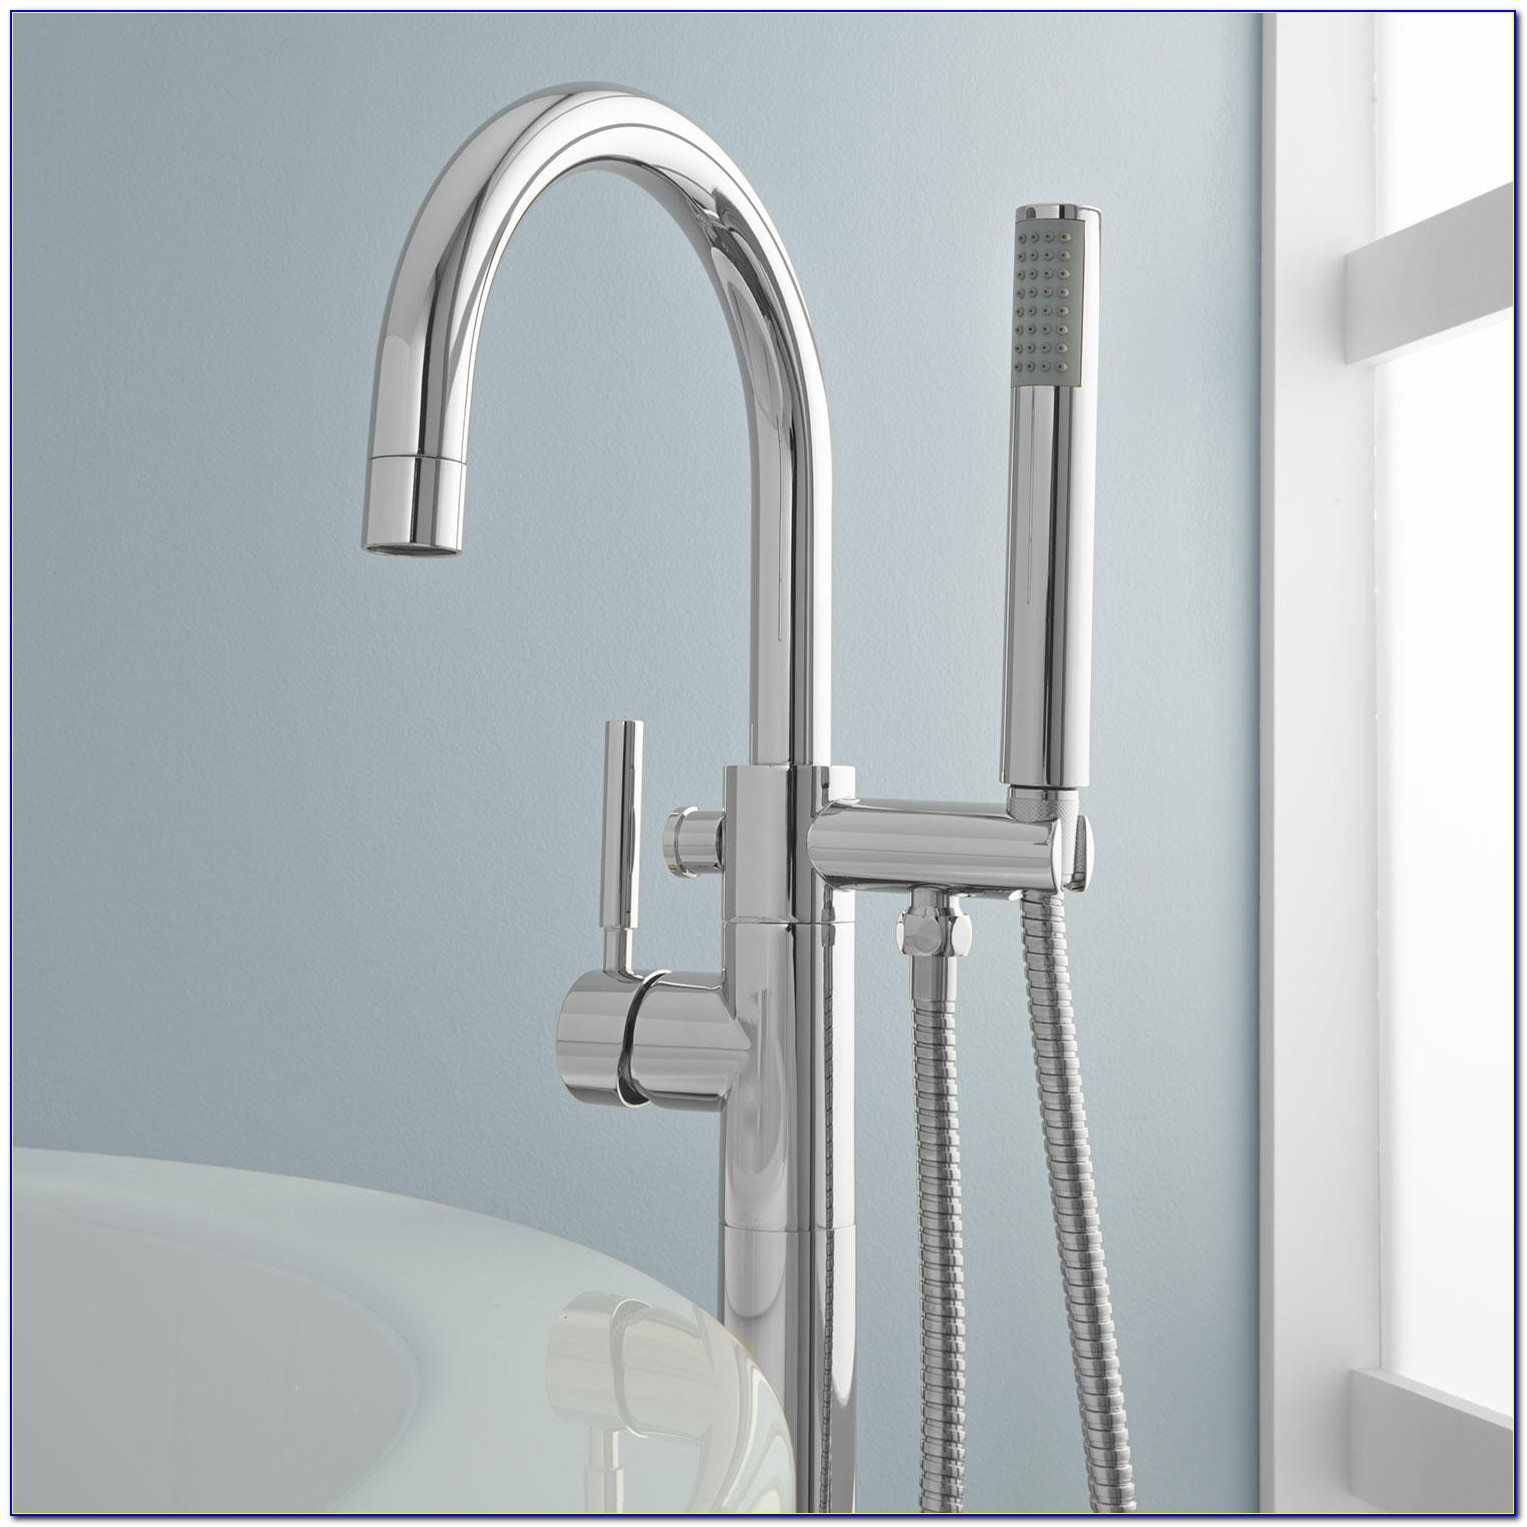 Moen Faucets For Freestanding Tubs